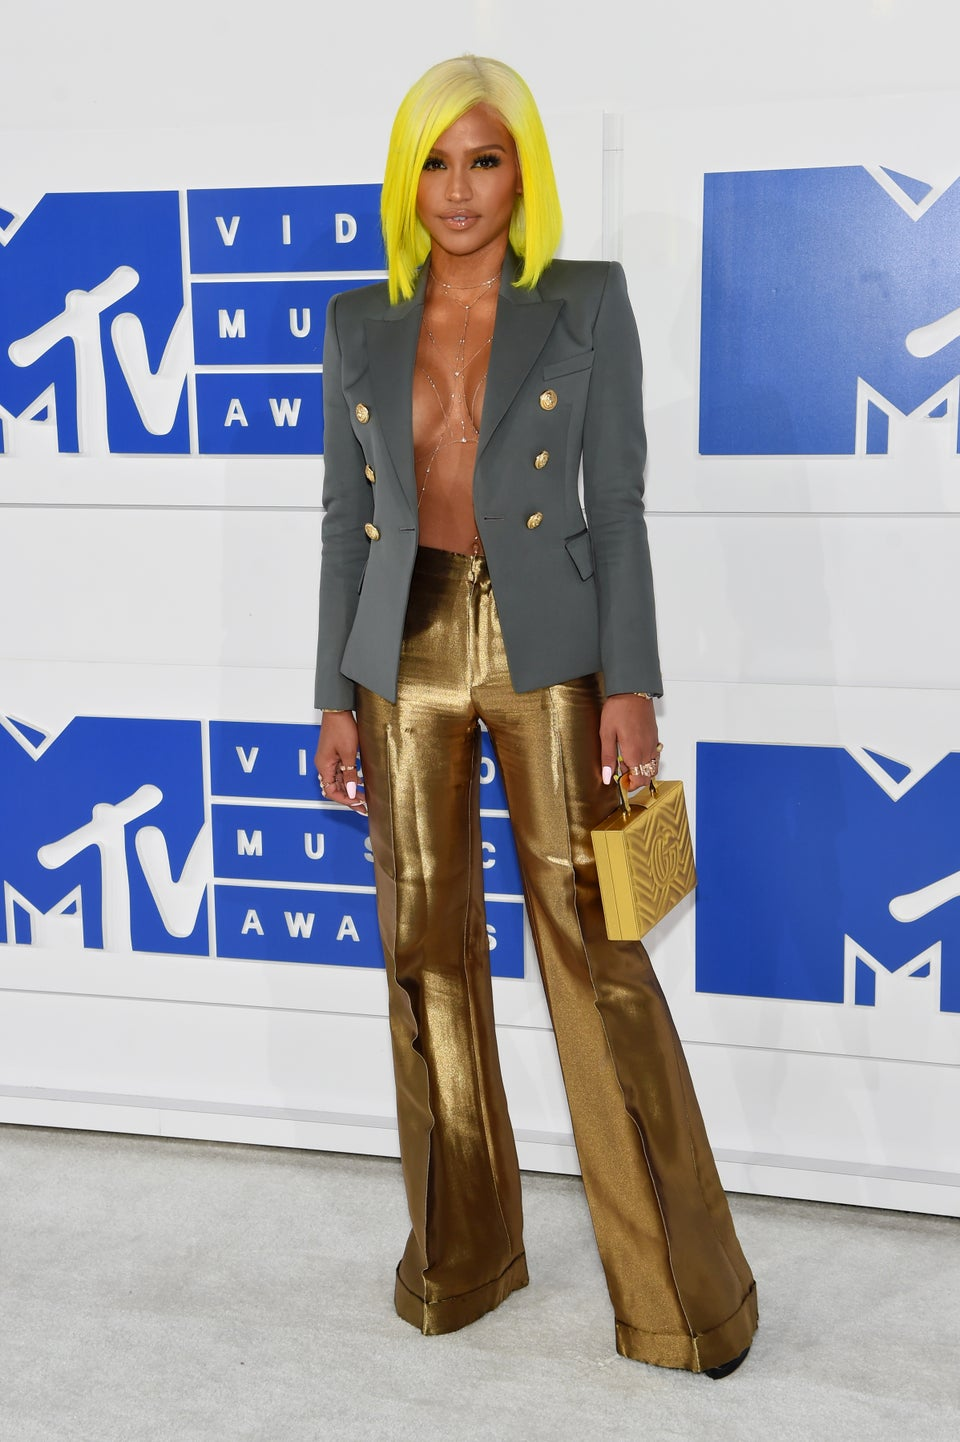 Cassie Delivers Electrifying Look on VMA Red Carpet